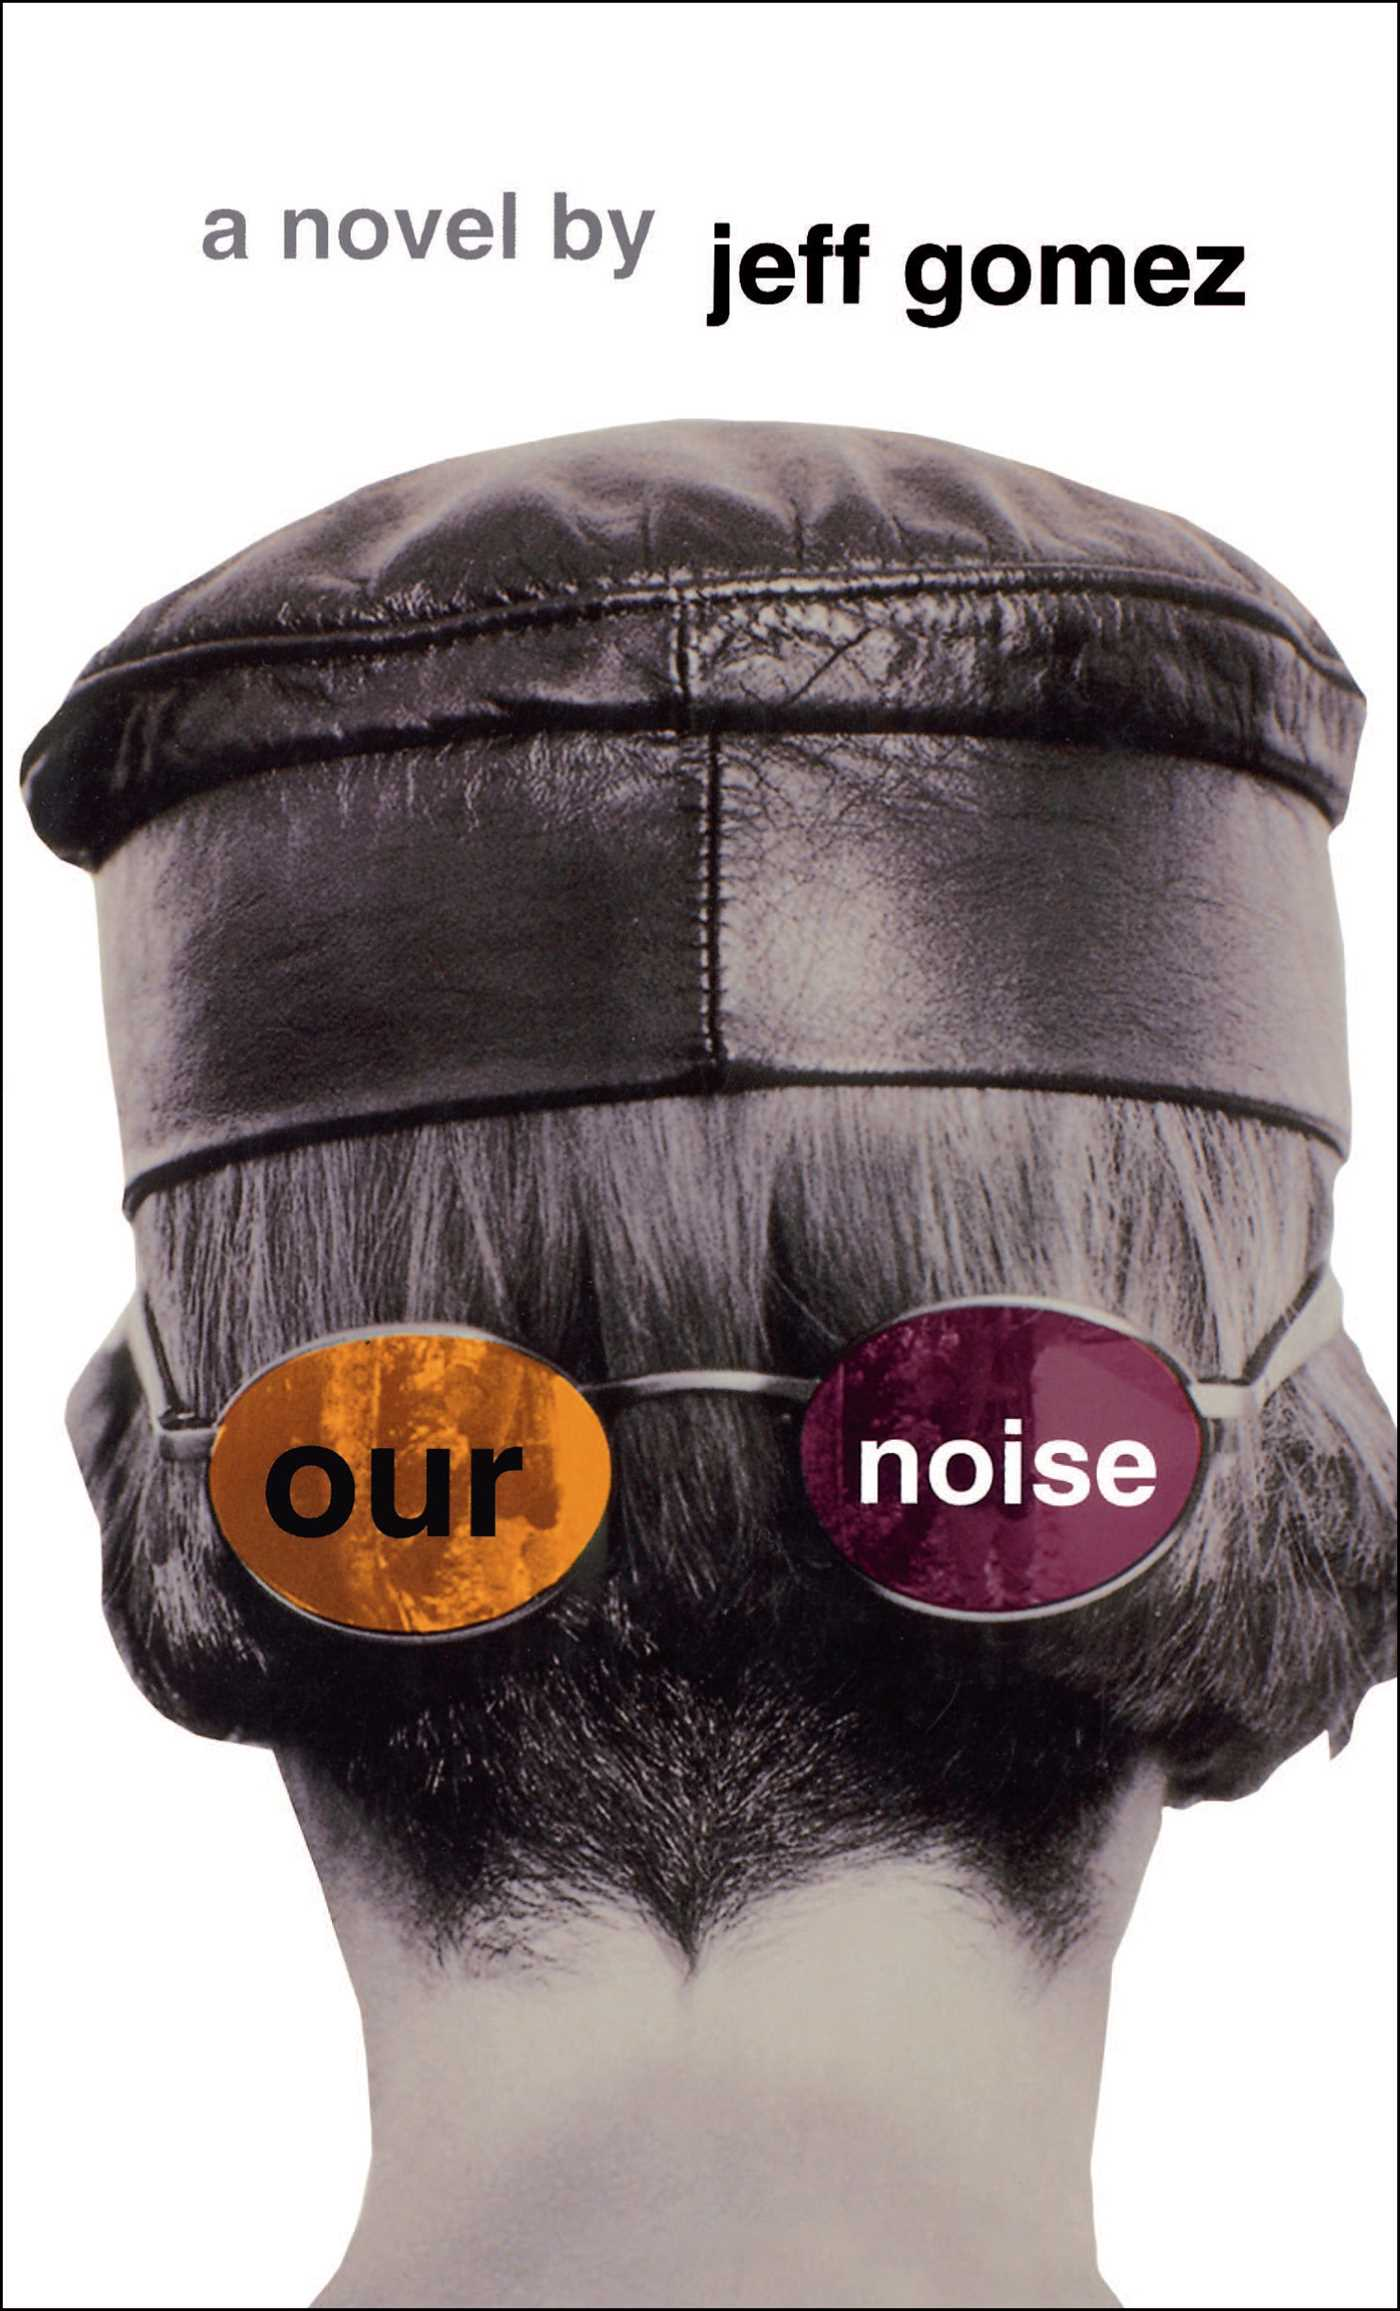 Our noise 9780684800998 hr